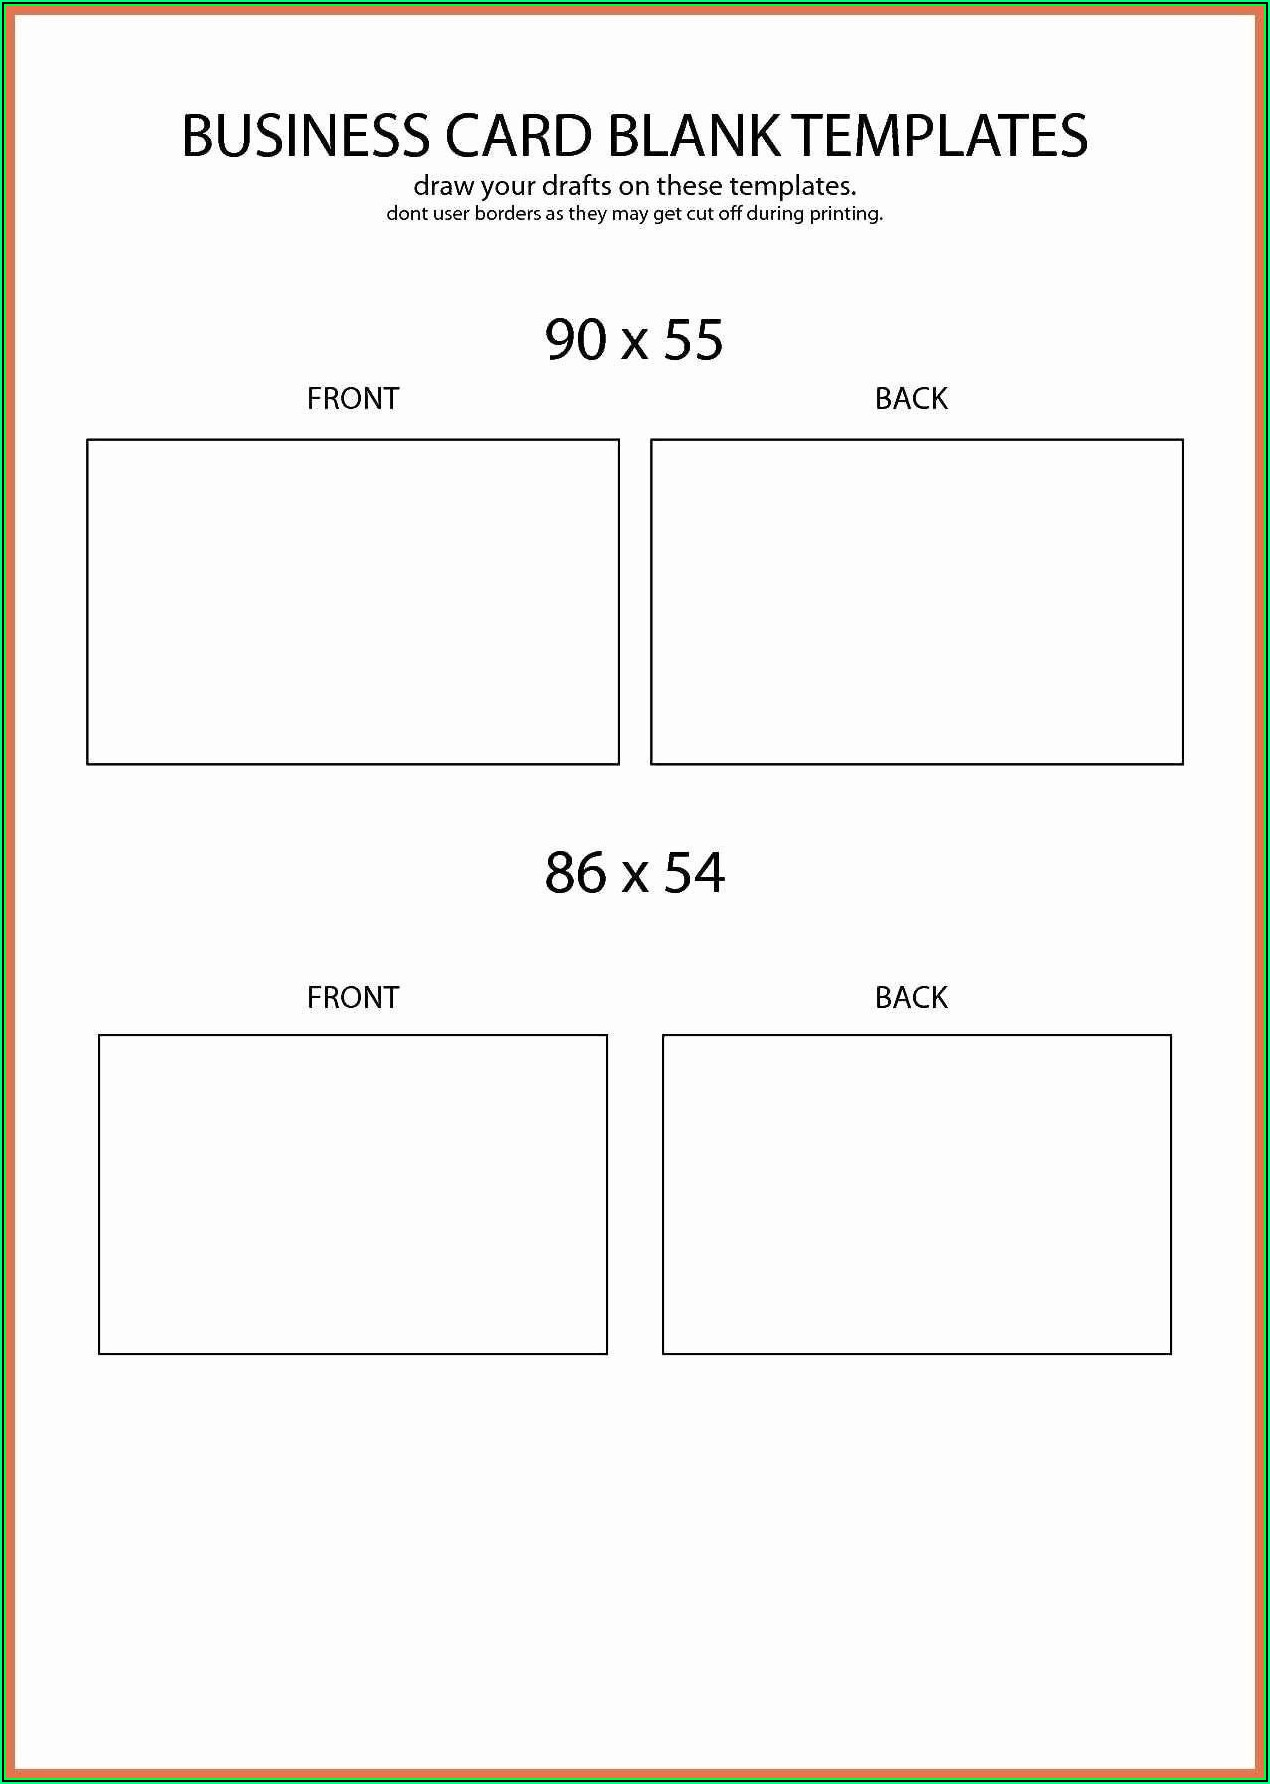 Royal Brites Business Cards Word Template